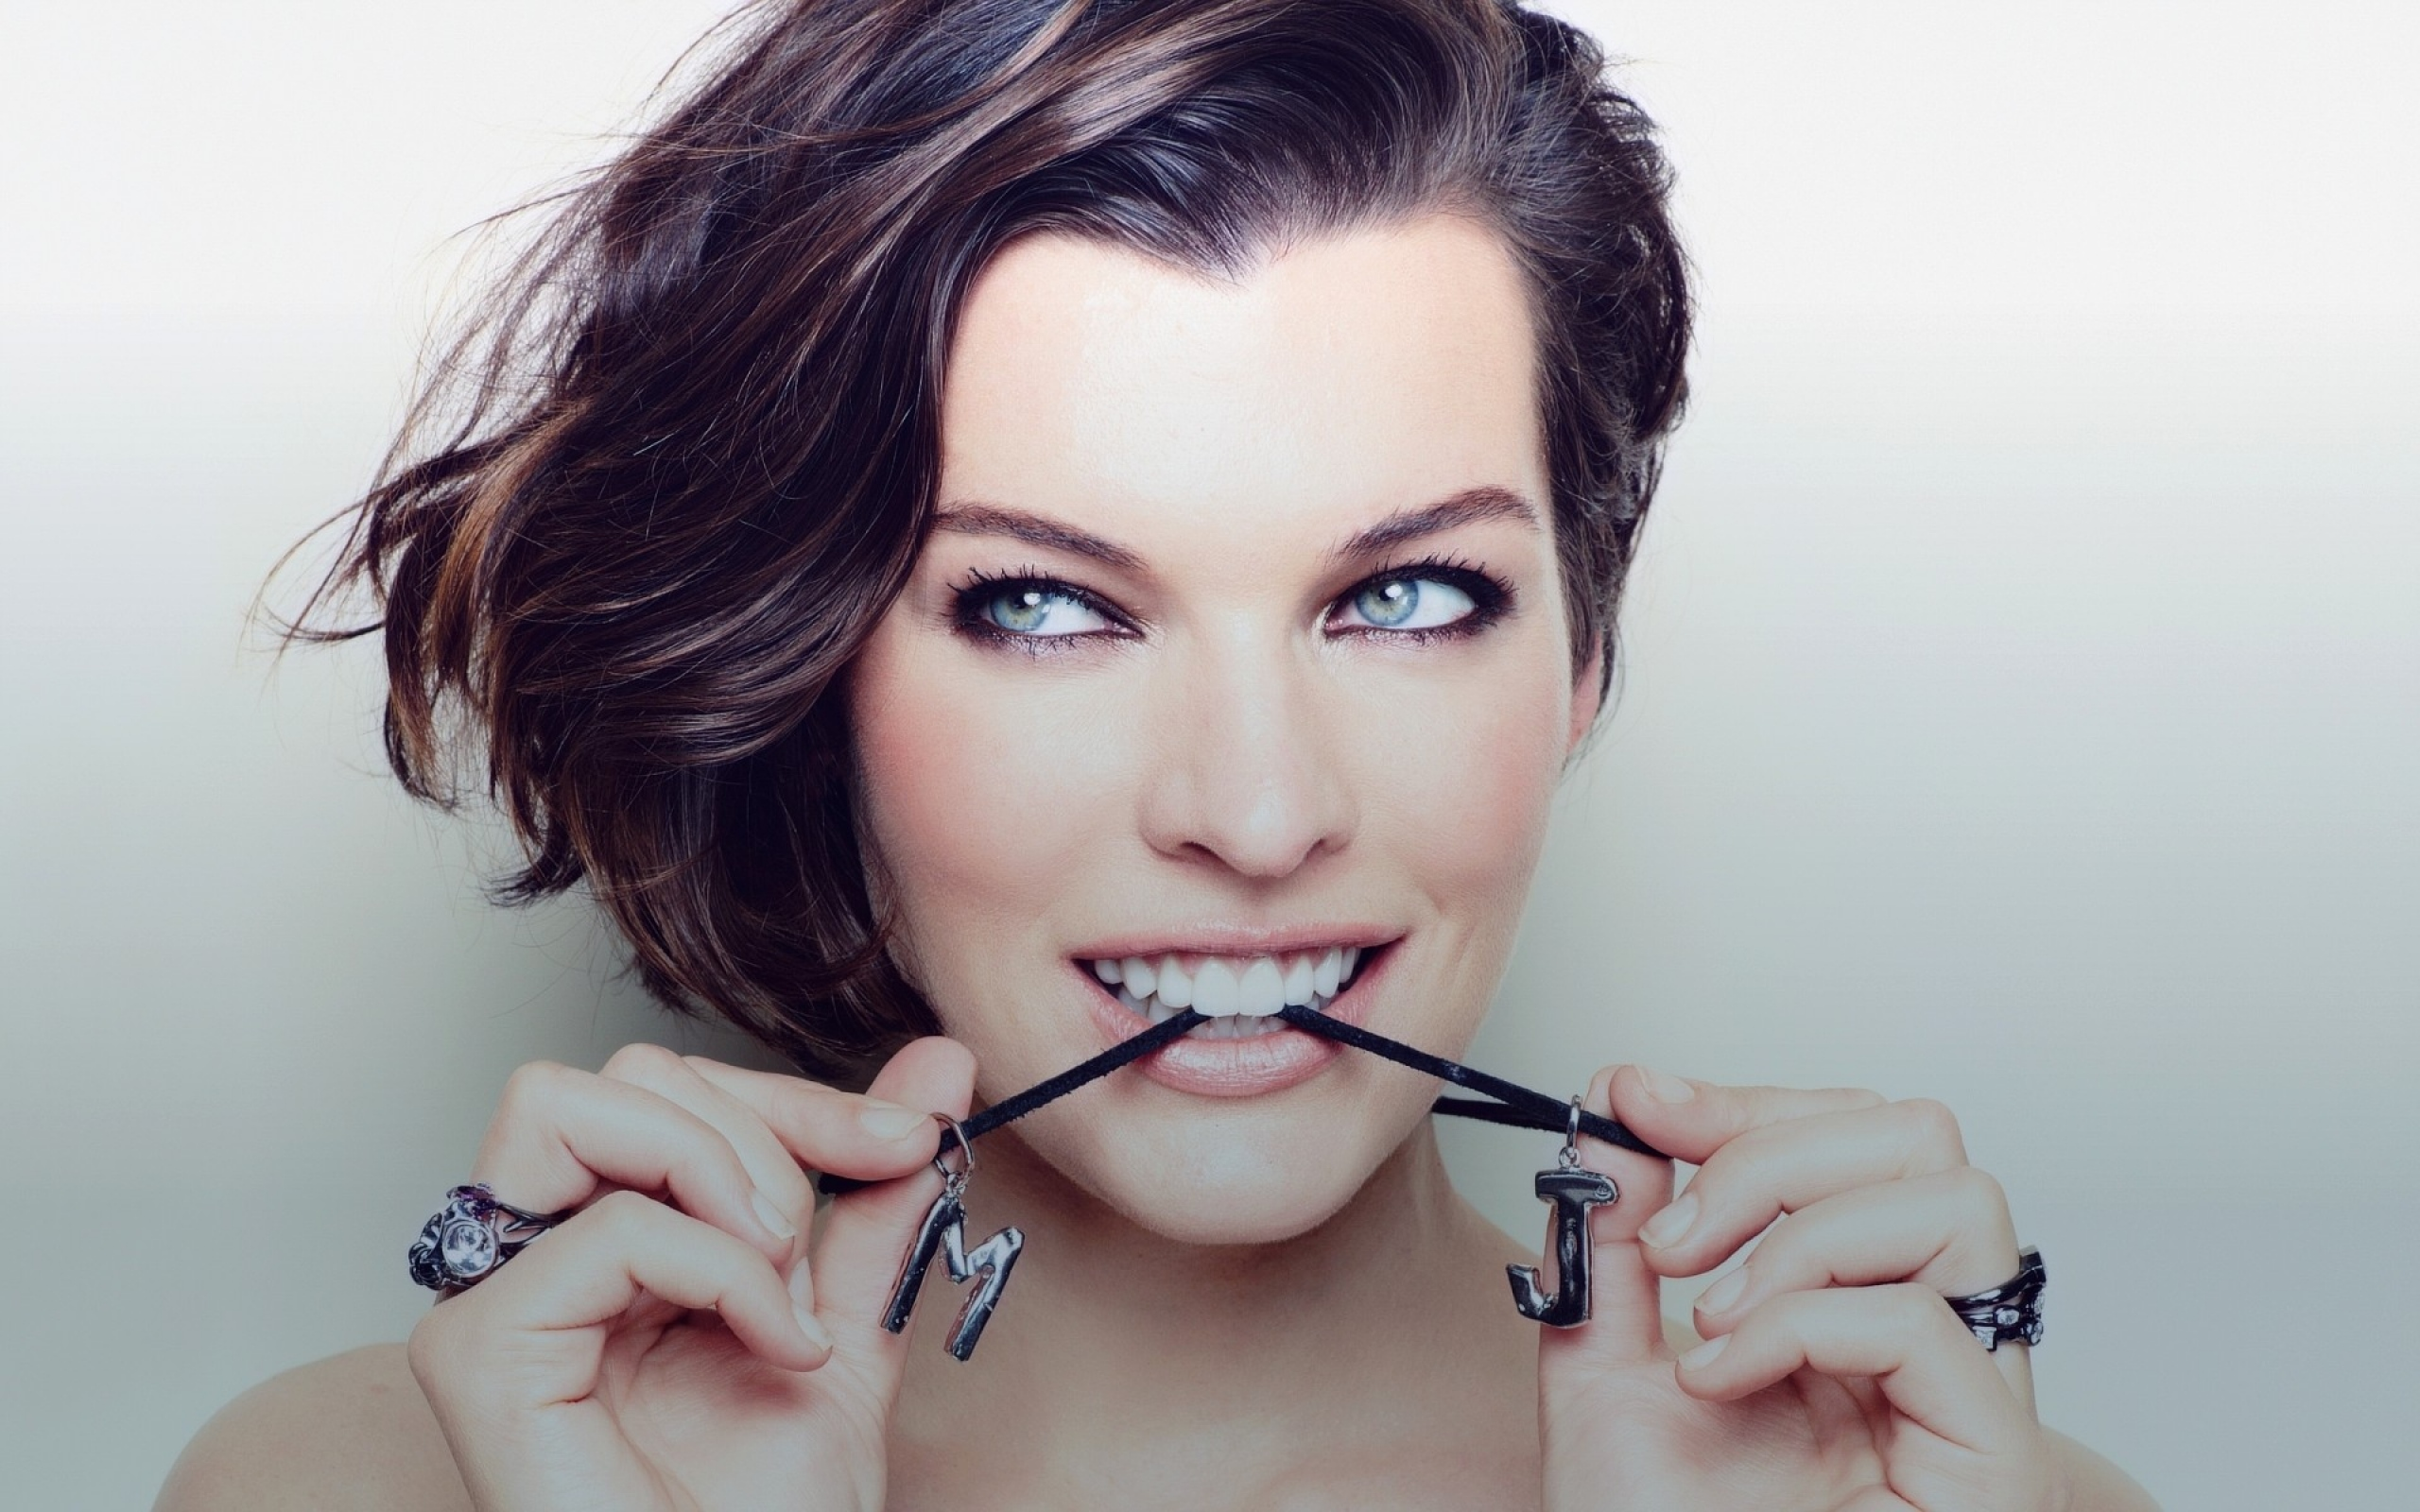 Rubrica: Who is now? – Milla Jovovich